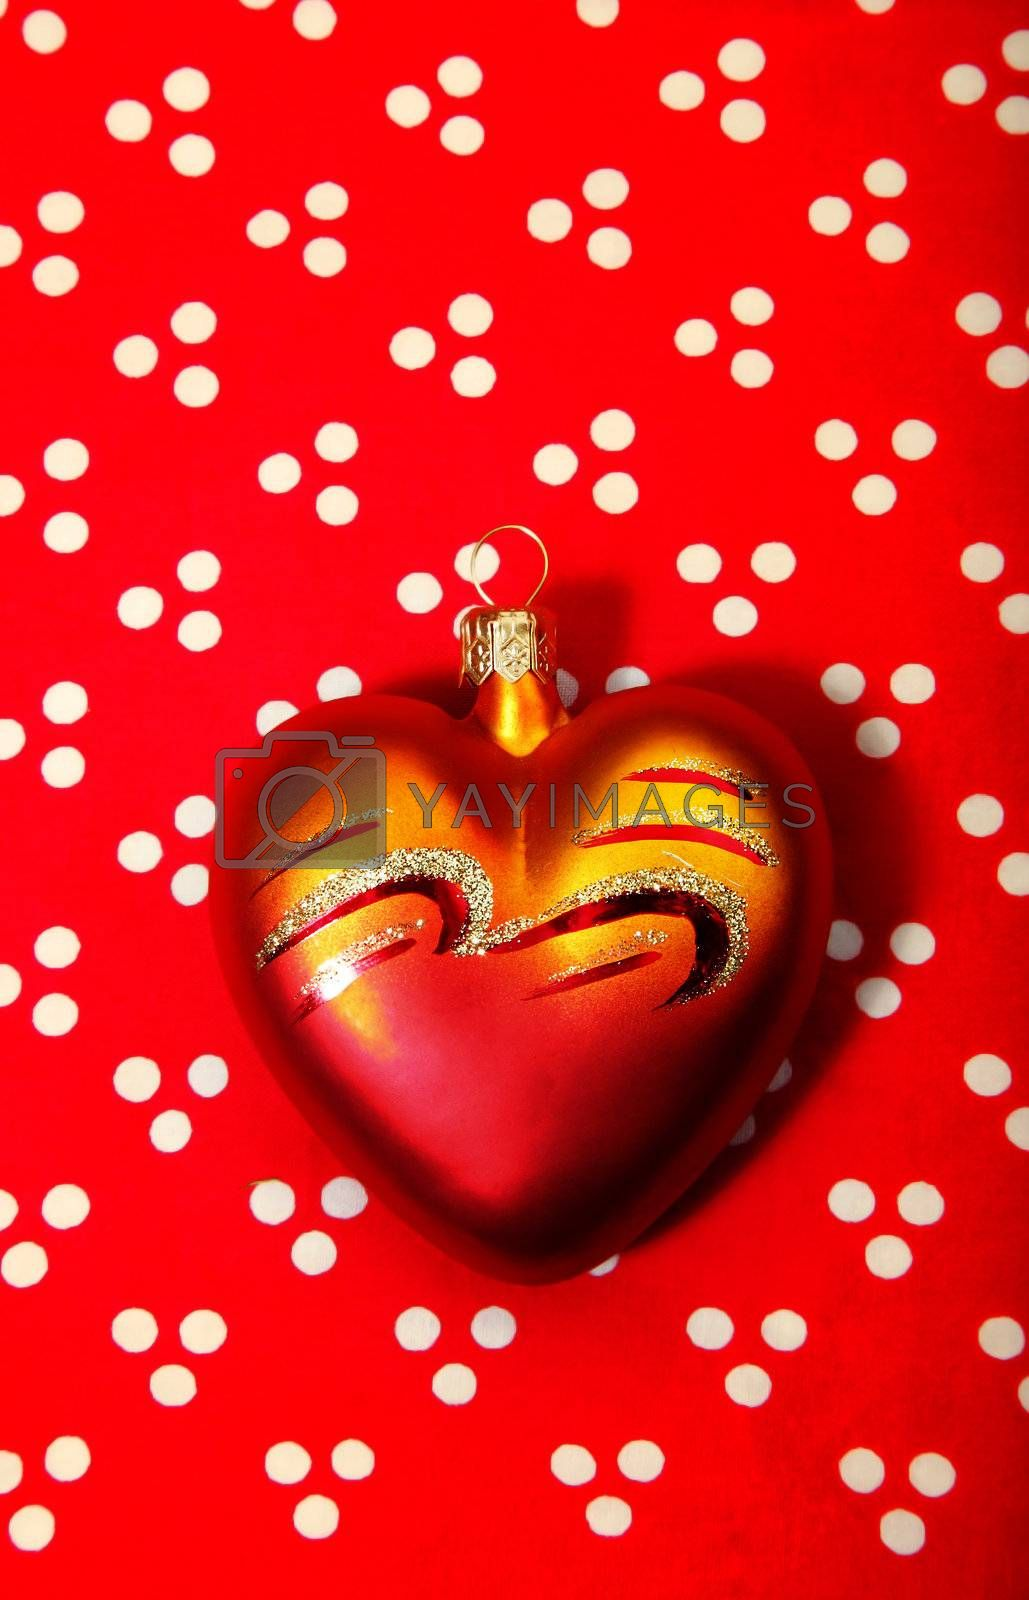 Toylike heart on a red background as a symbol of Valentine's Day or Christmas